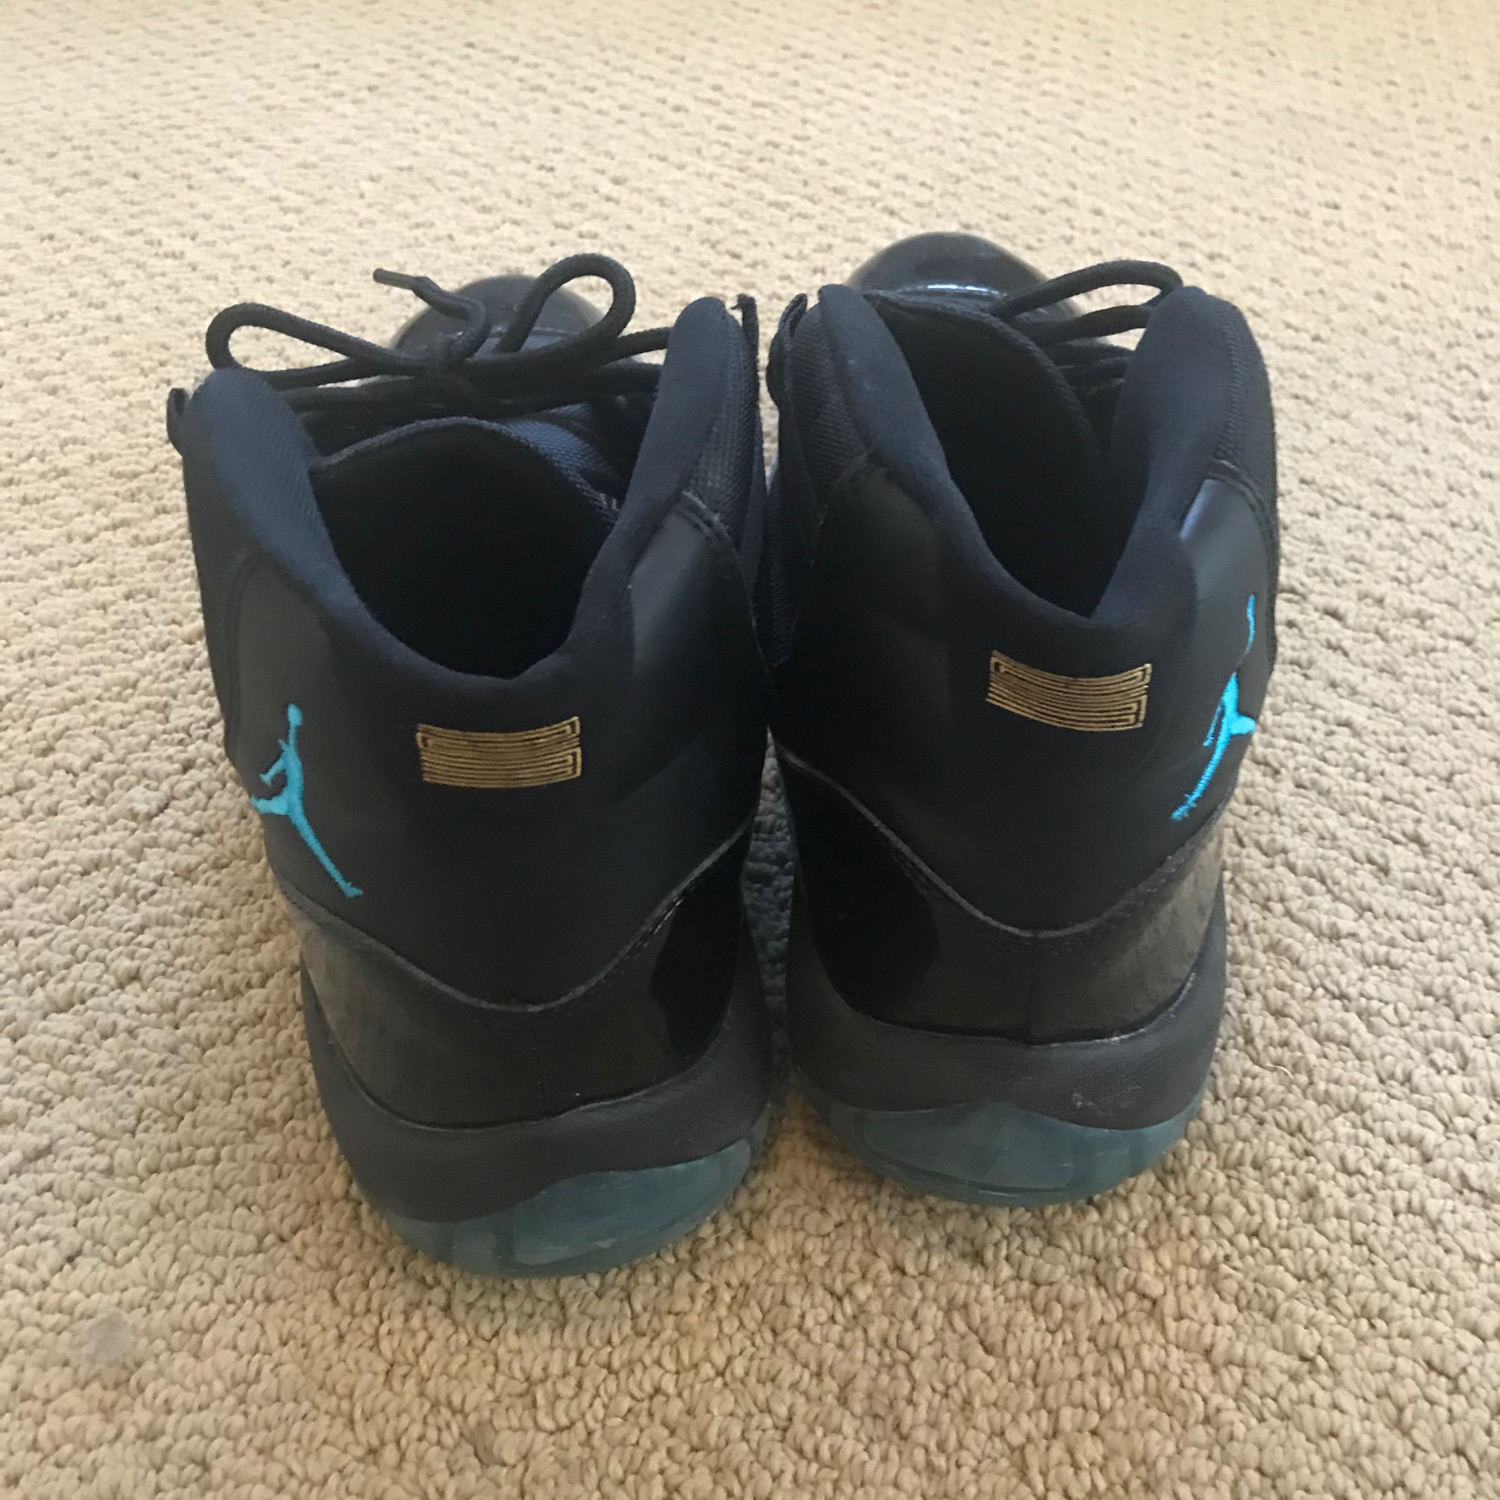 Jordan 11 Gamma Vnds Good Price